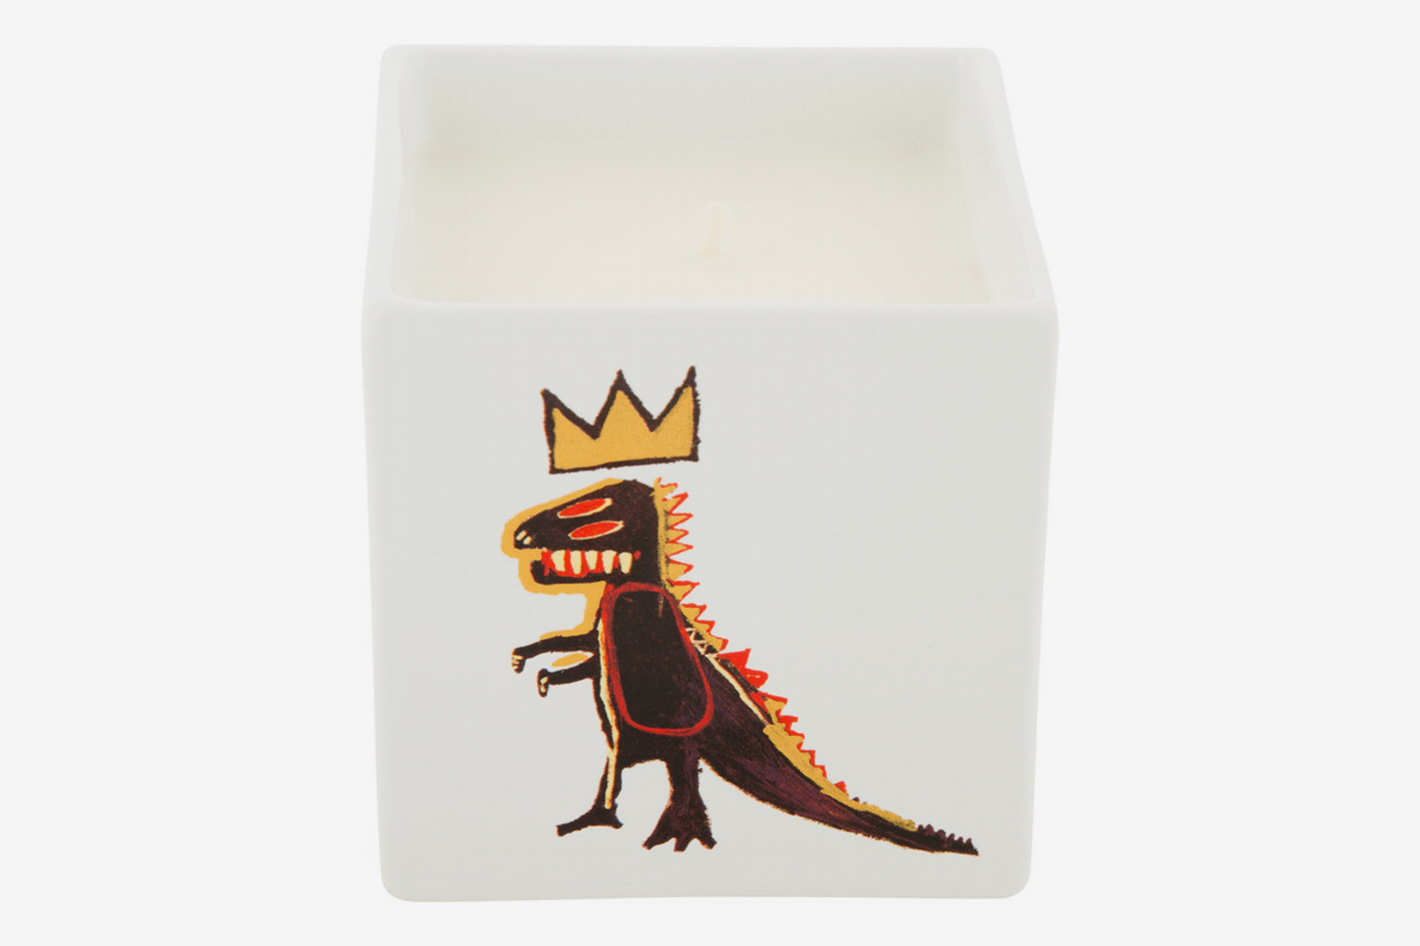 Jean-Michel Basquiat Square Scented Candle